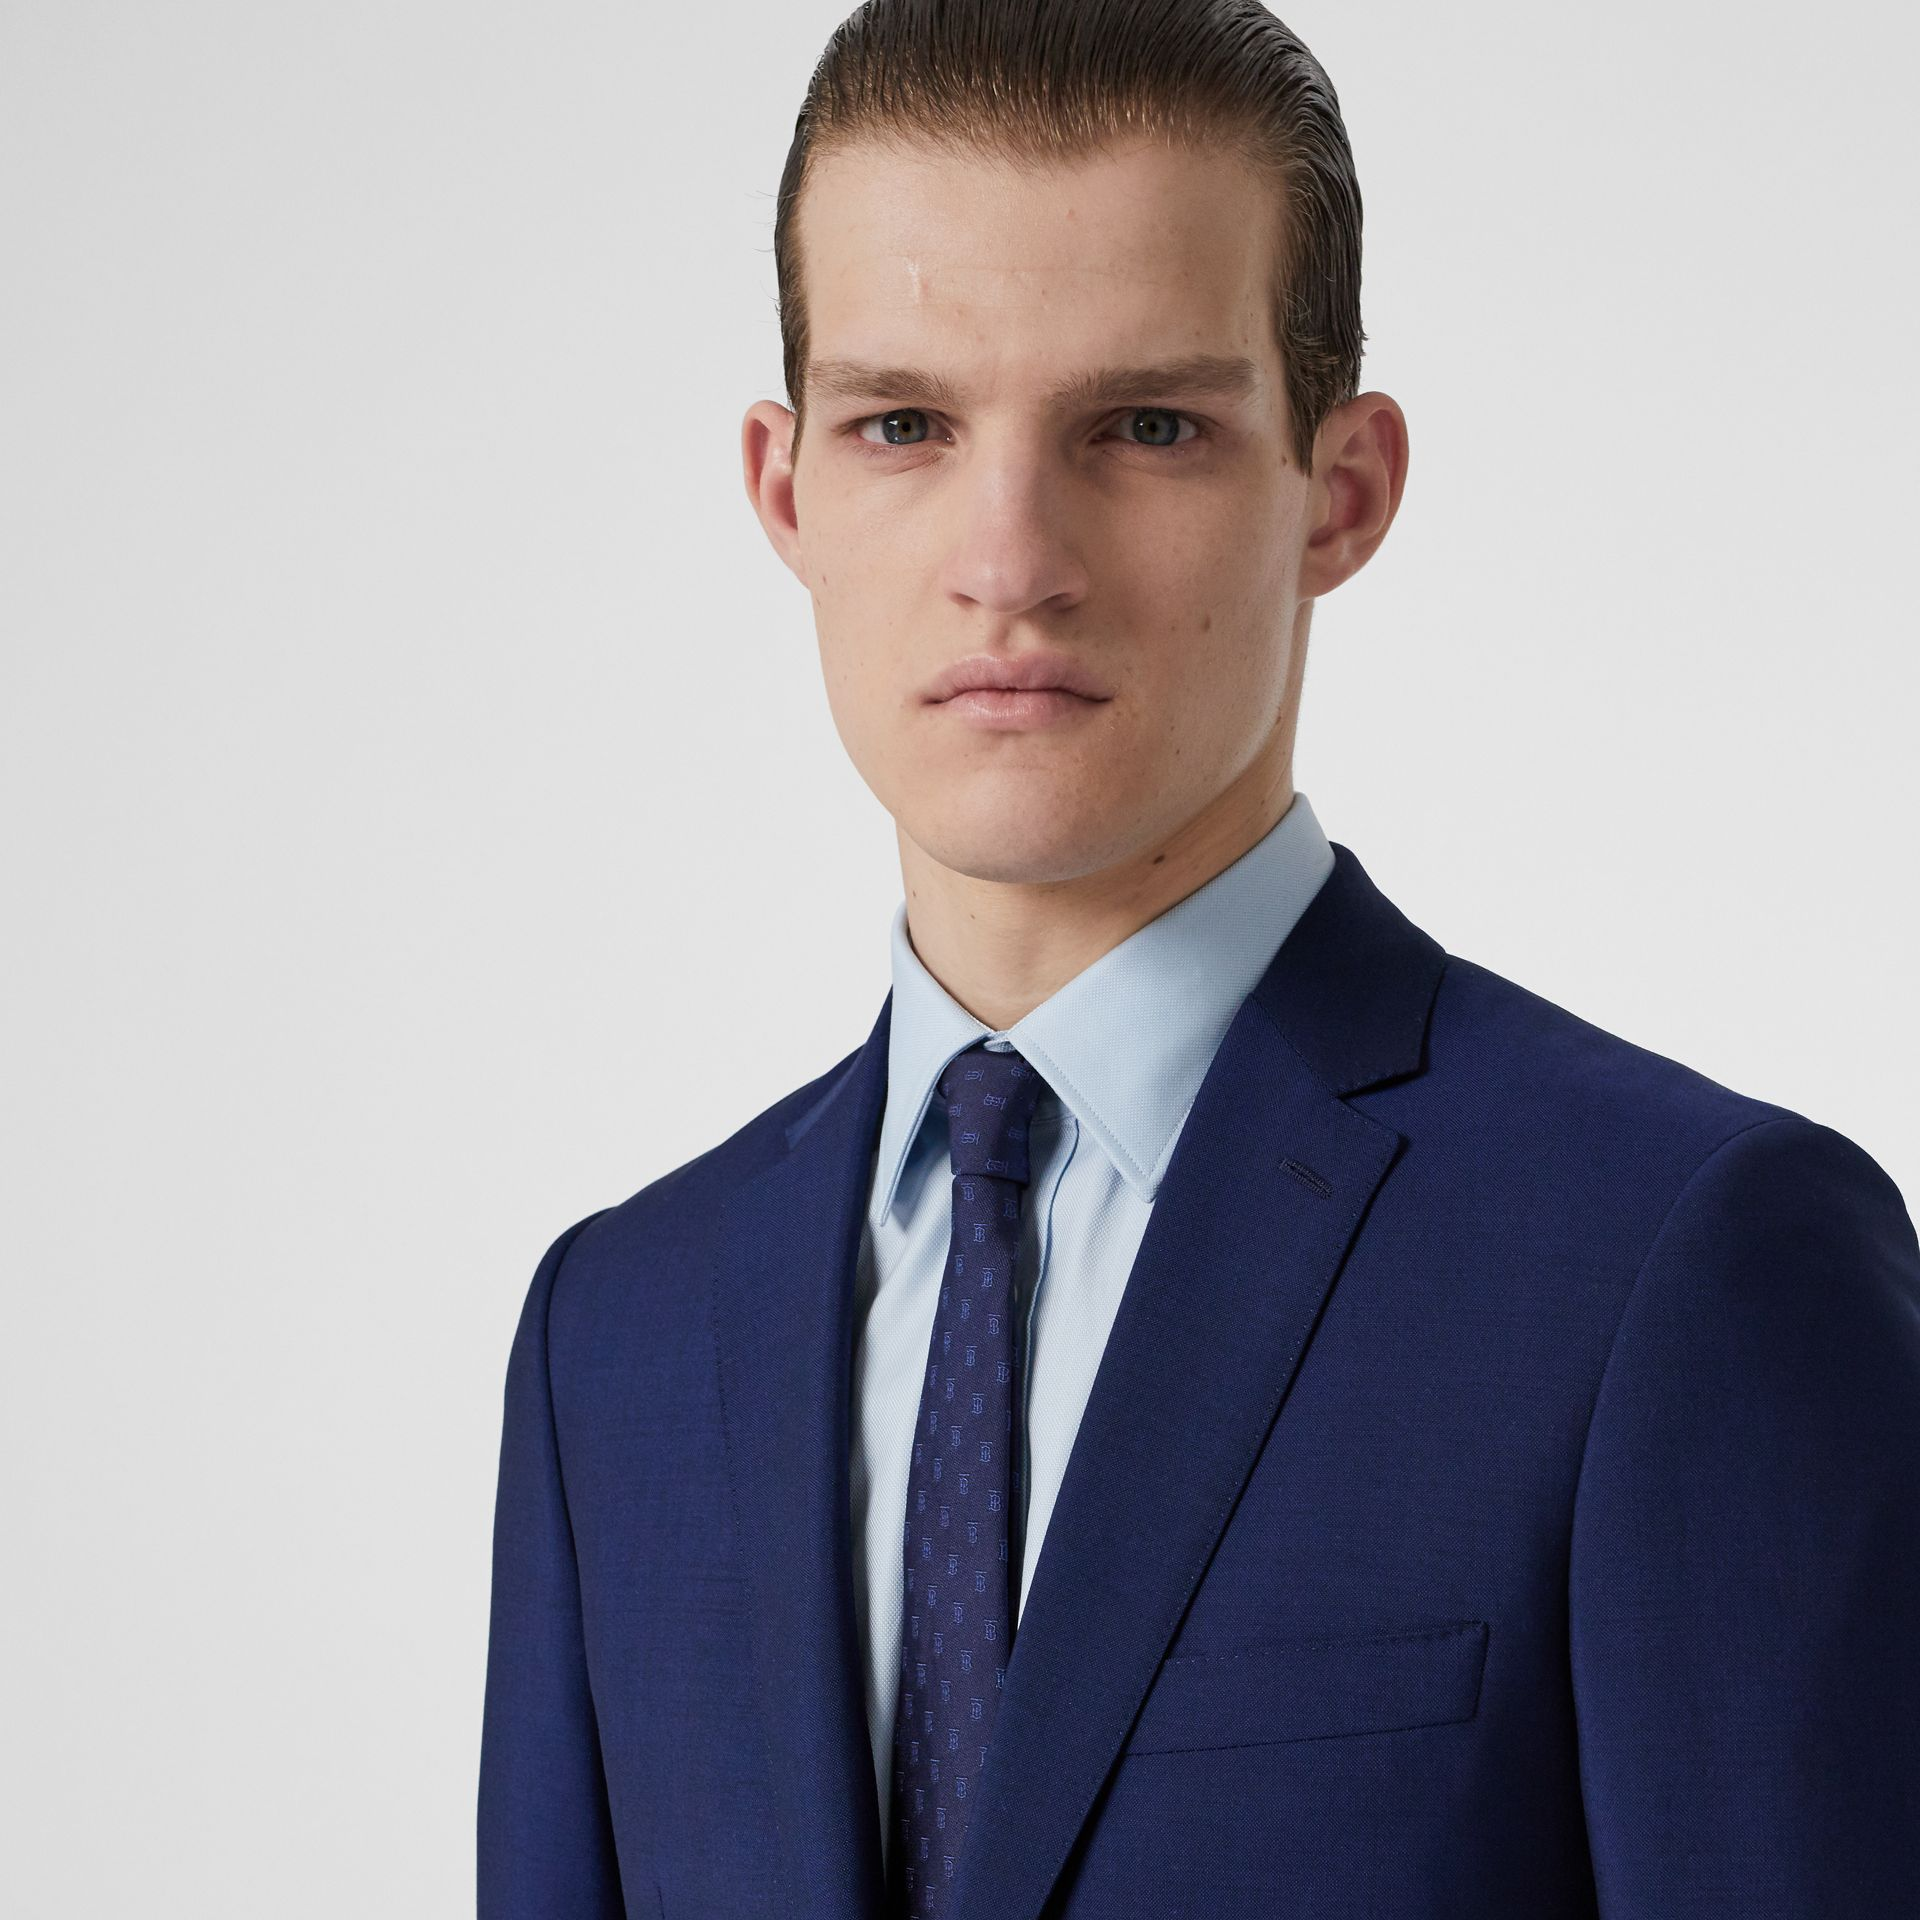 Slim Fit Wool Mohair Suit in Navy - Men | Burberry - gallery image 1